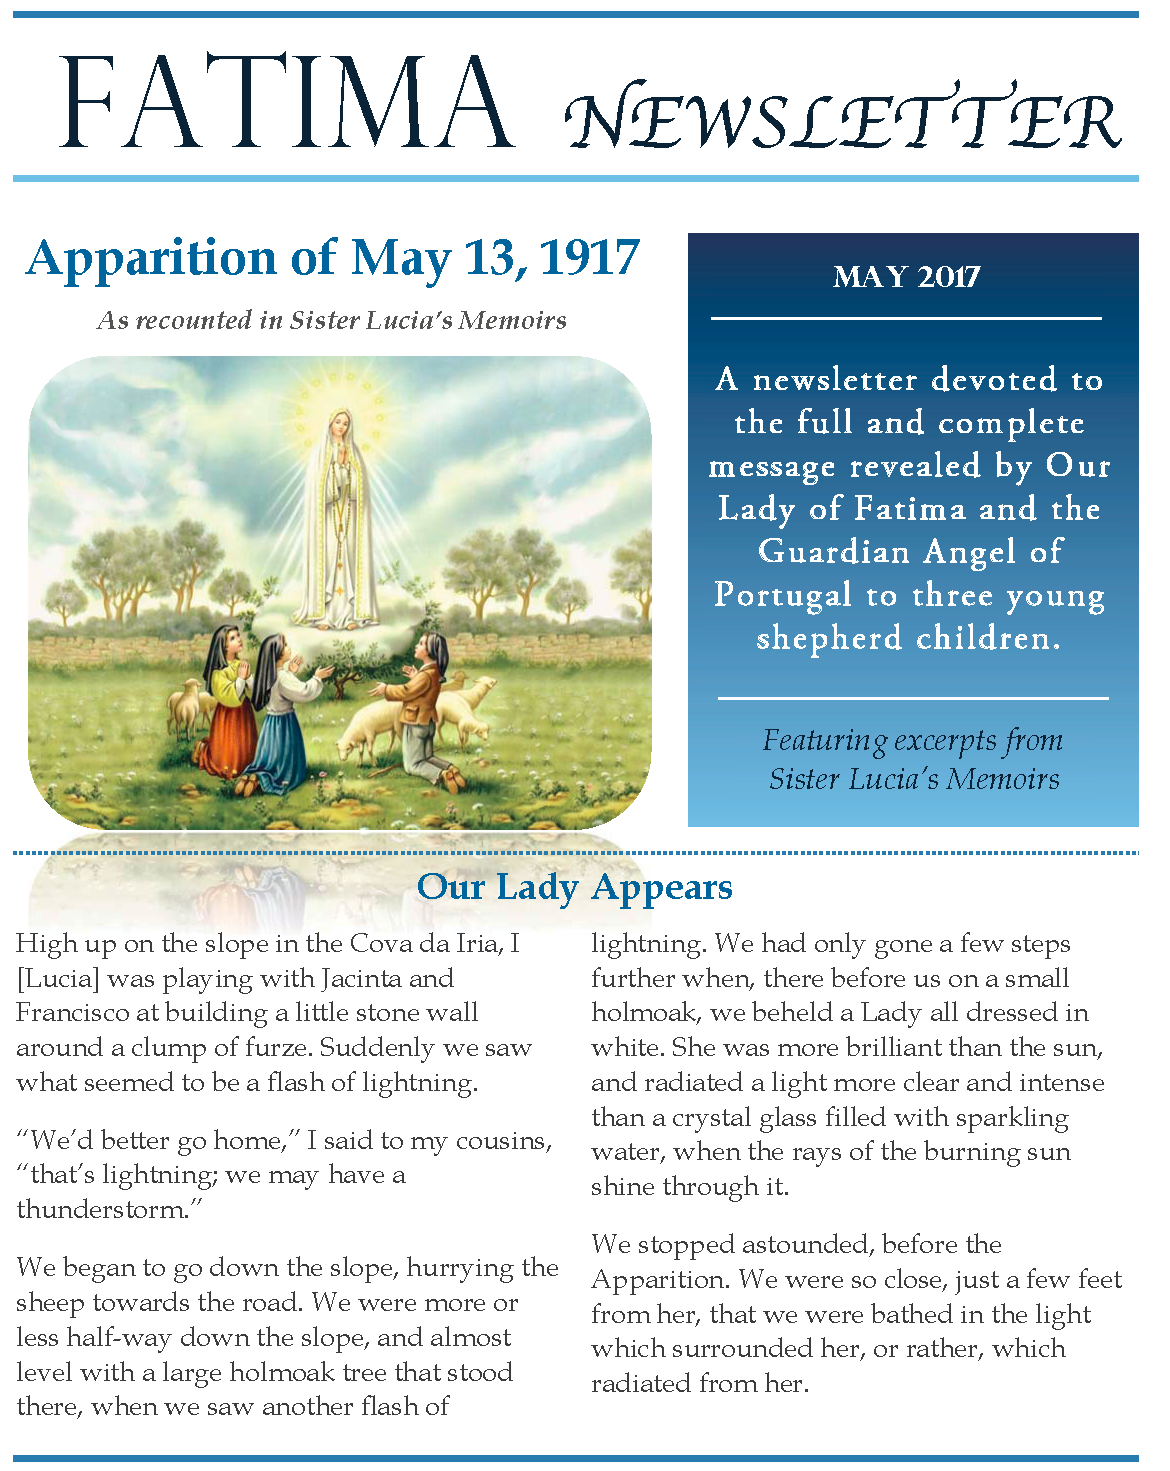 Fatima Newsletter May 2017 2_Page_1